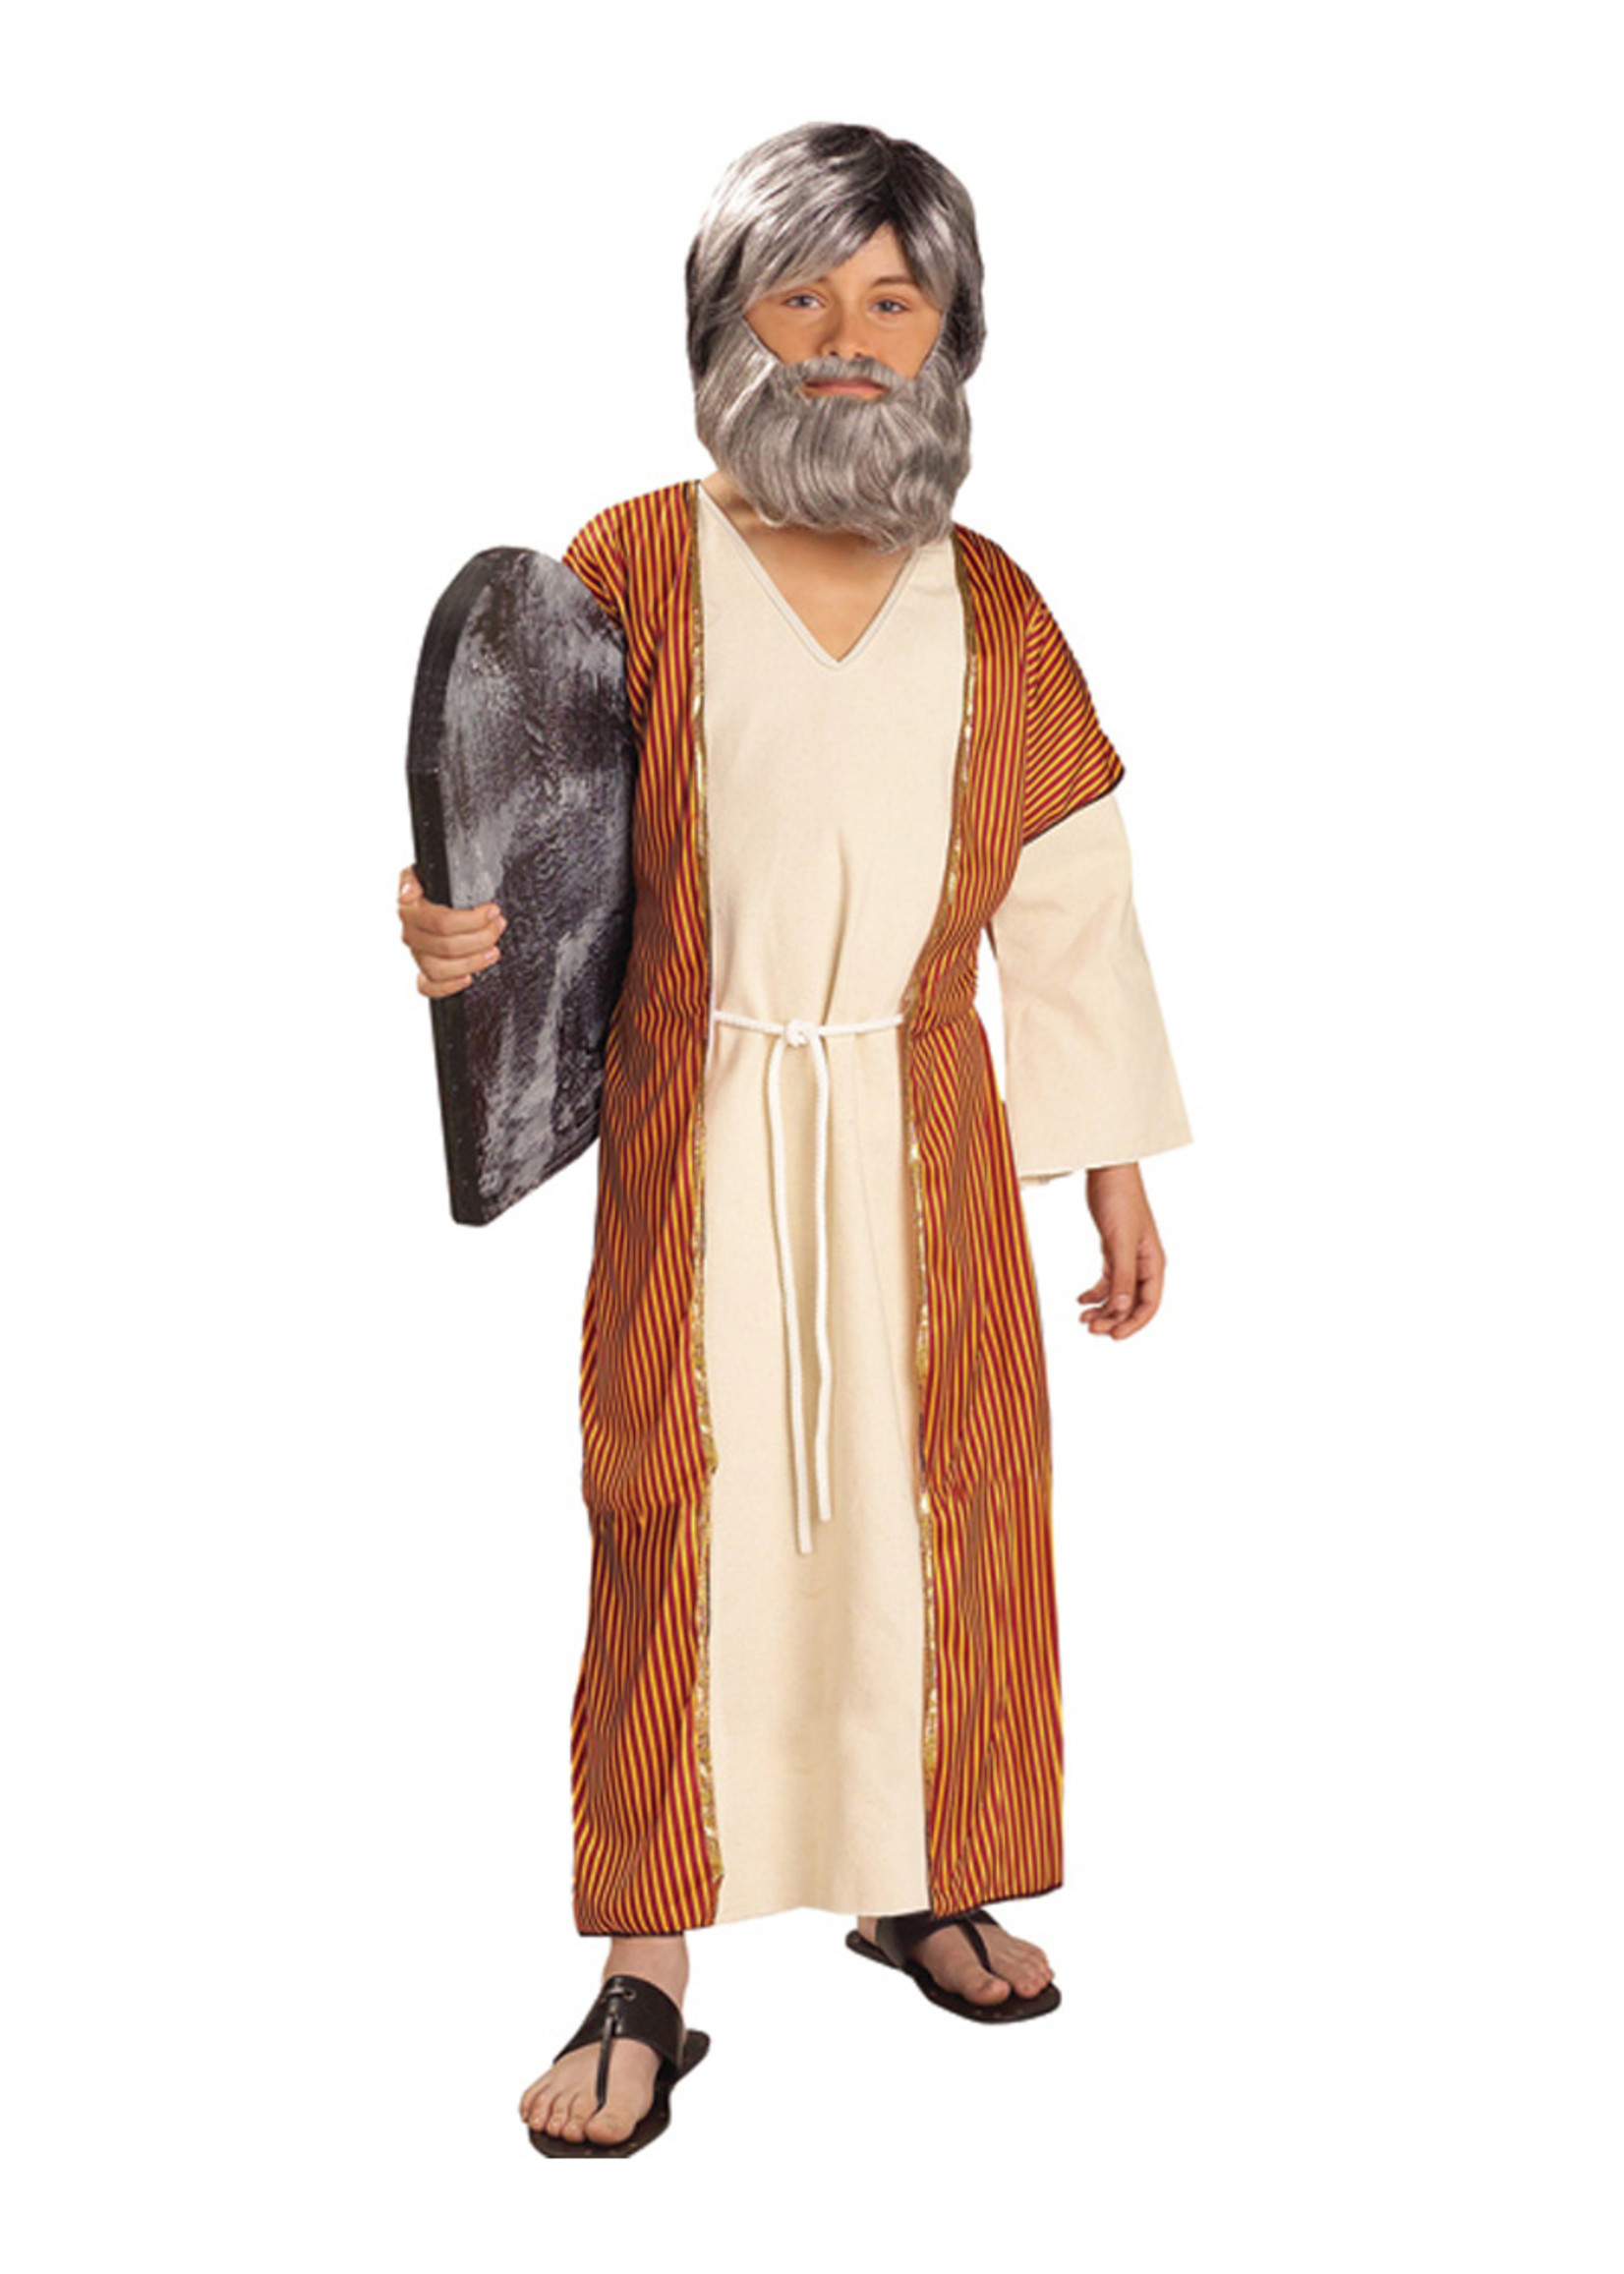 FORUM NOVELTIES Moses Costume - Boy's